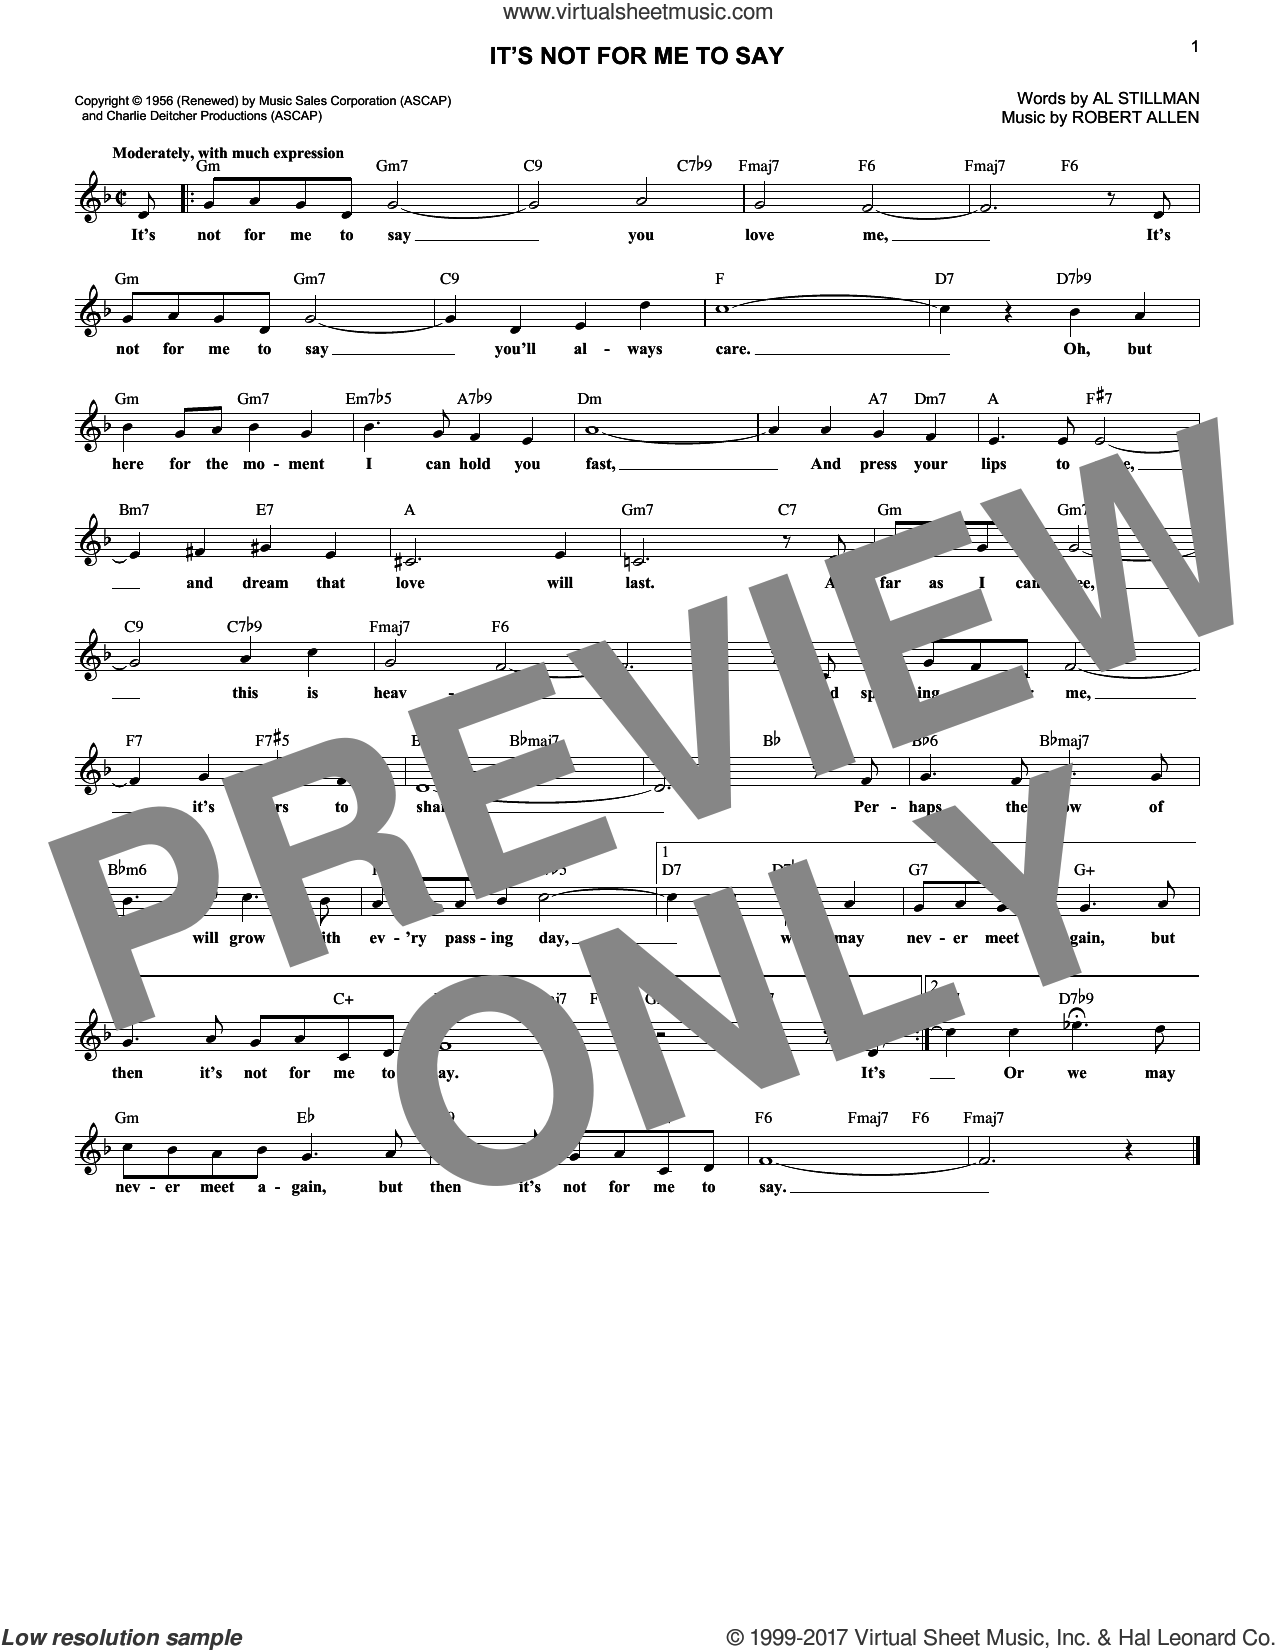 It's Not For Me To Say sheet music for voice and other instruments (fake book) by Johnny Mathis, Al Stillman and Robert Allen, intermediate skill level